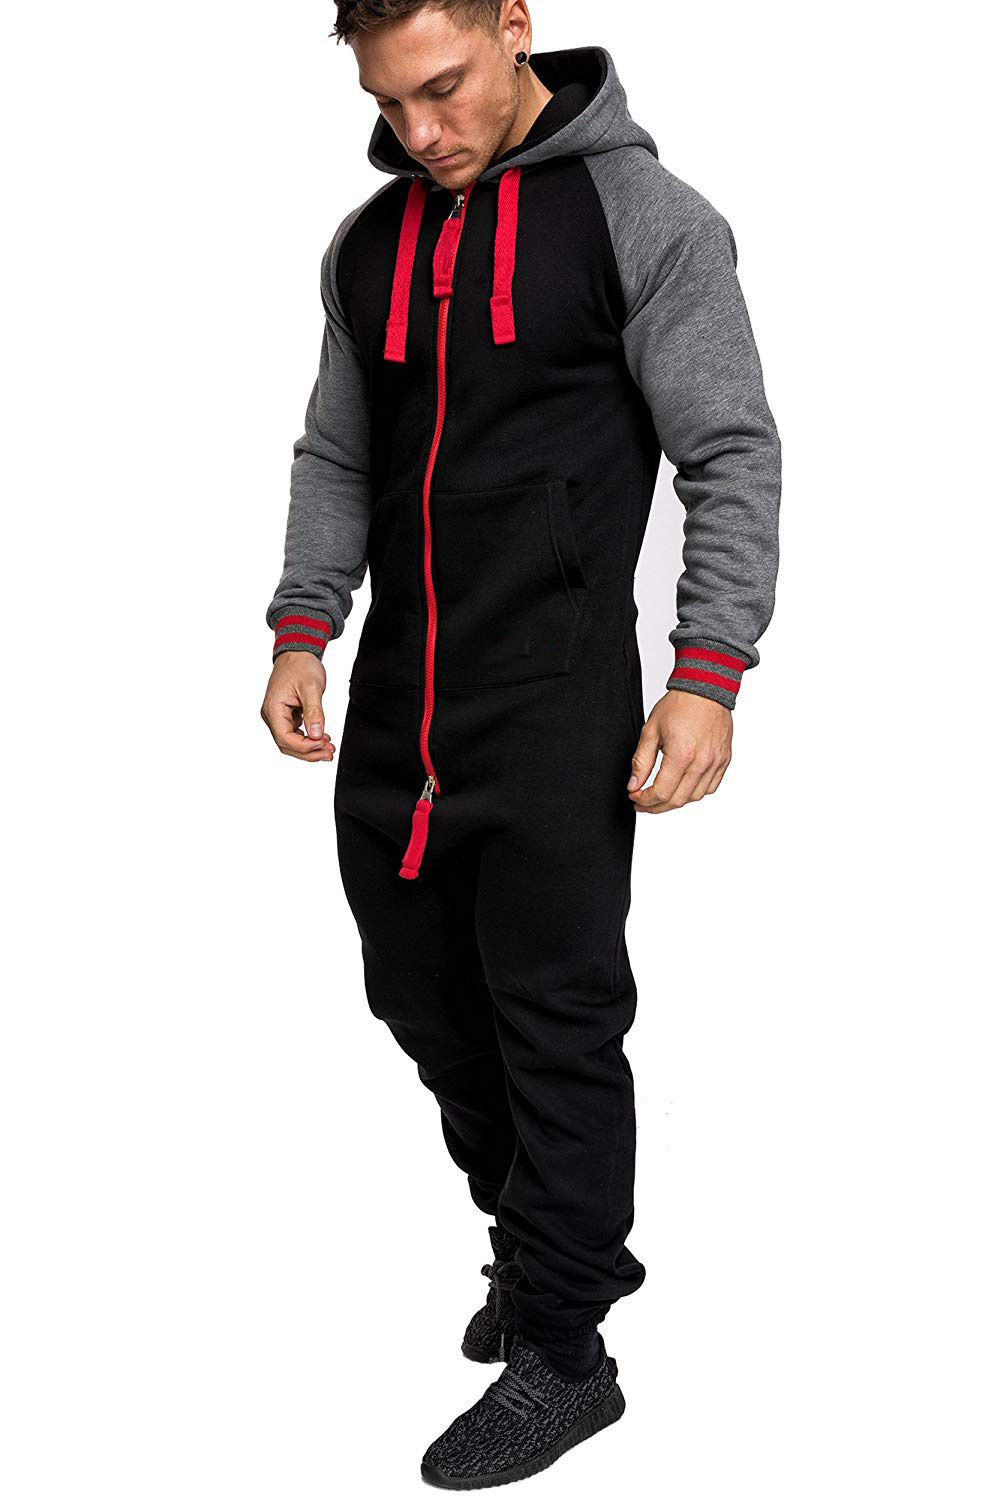 Casual Autumn Hooded Tracksuit Jumpsuit Long Pants Romper For Male Mens Fleece warm Overalls Sweatshirts Male Streetwear X9126 23